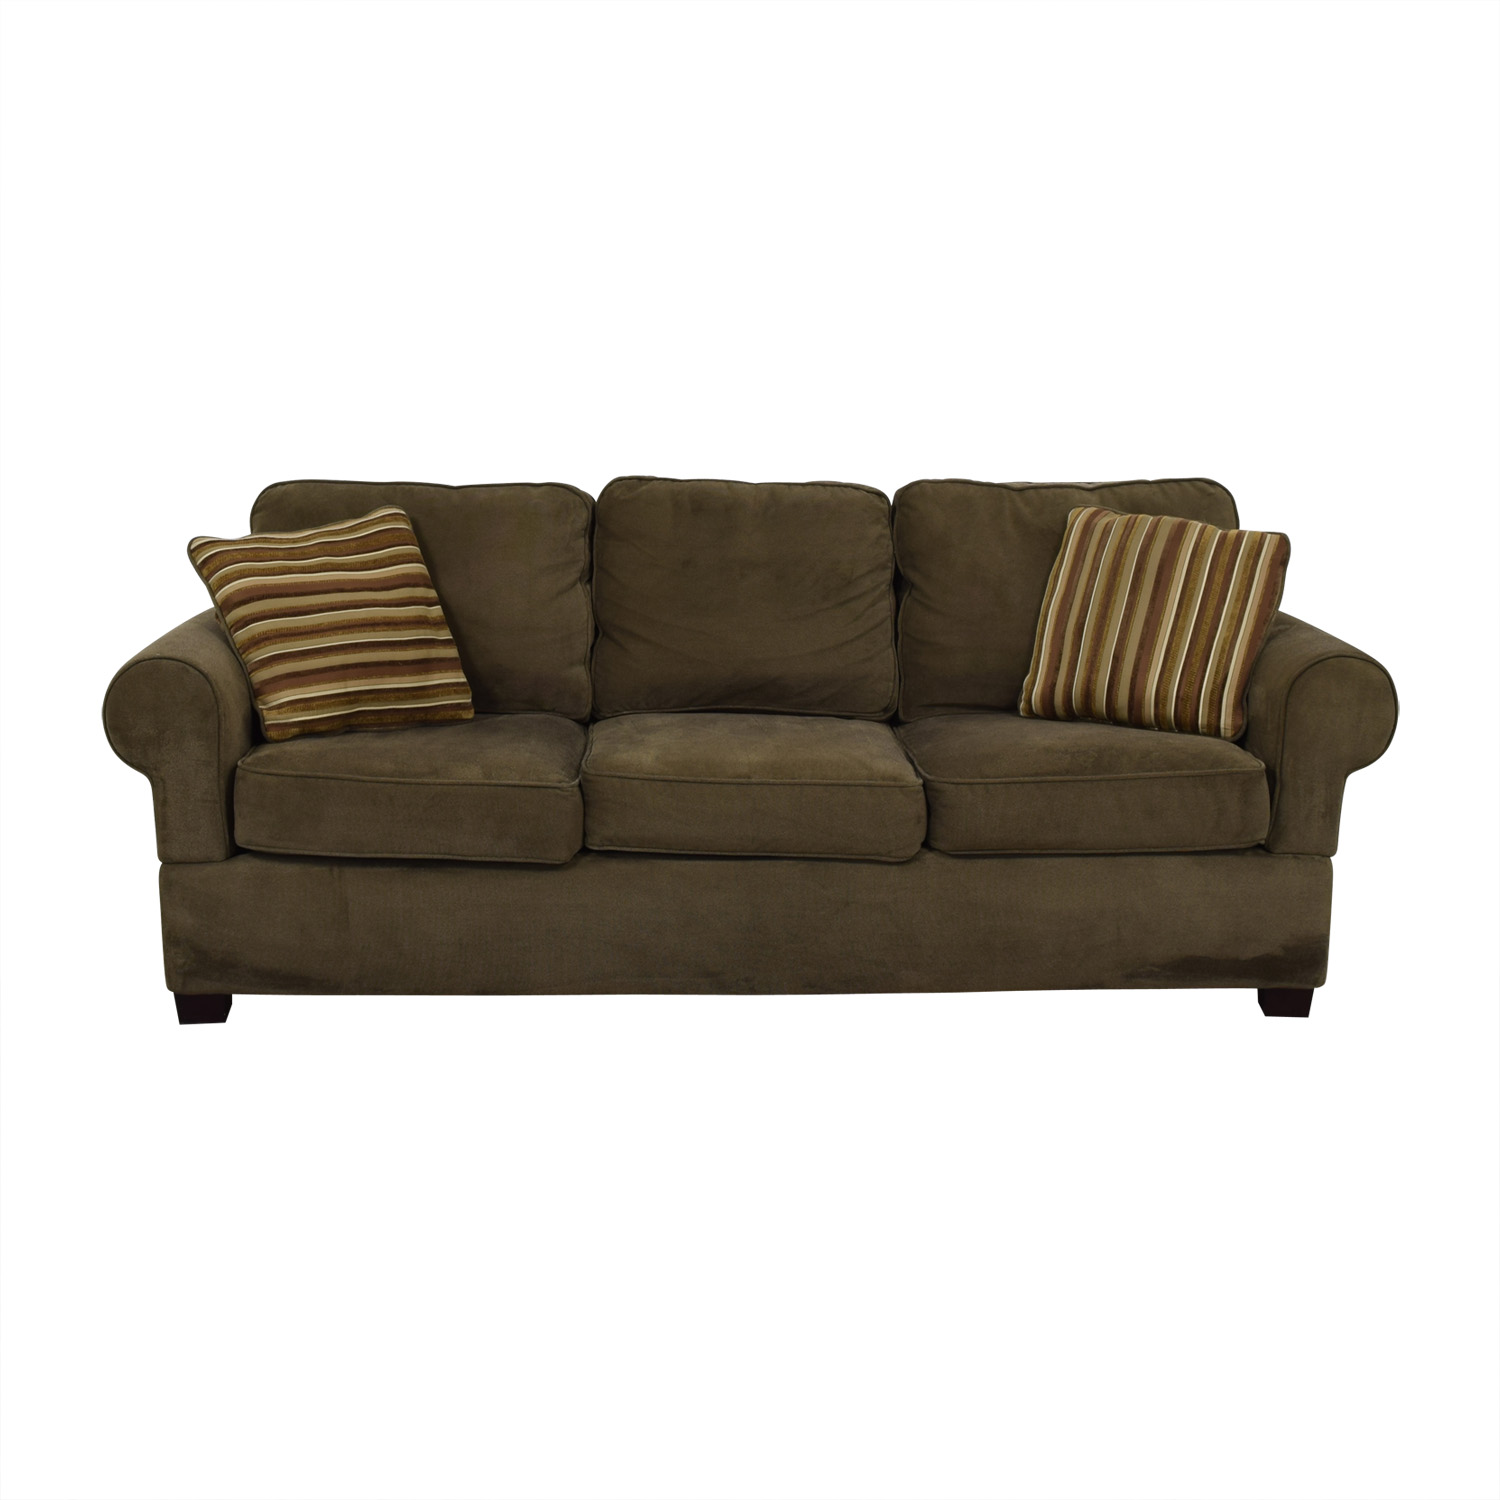 buy Jennifer Convertibles Jennifer Convertibles Olive Three-Cushion Couch online